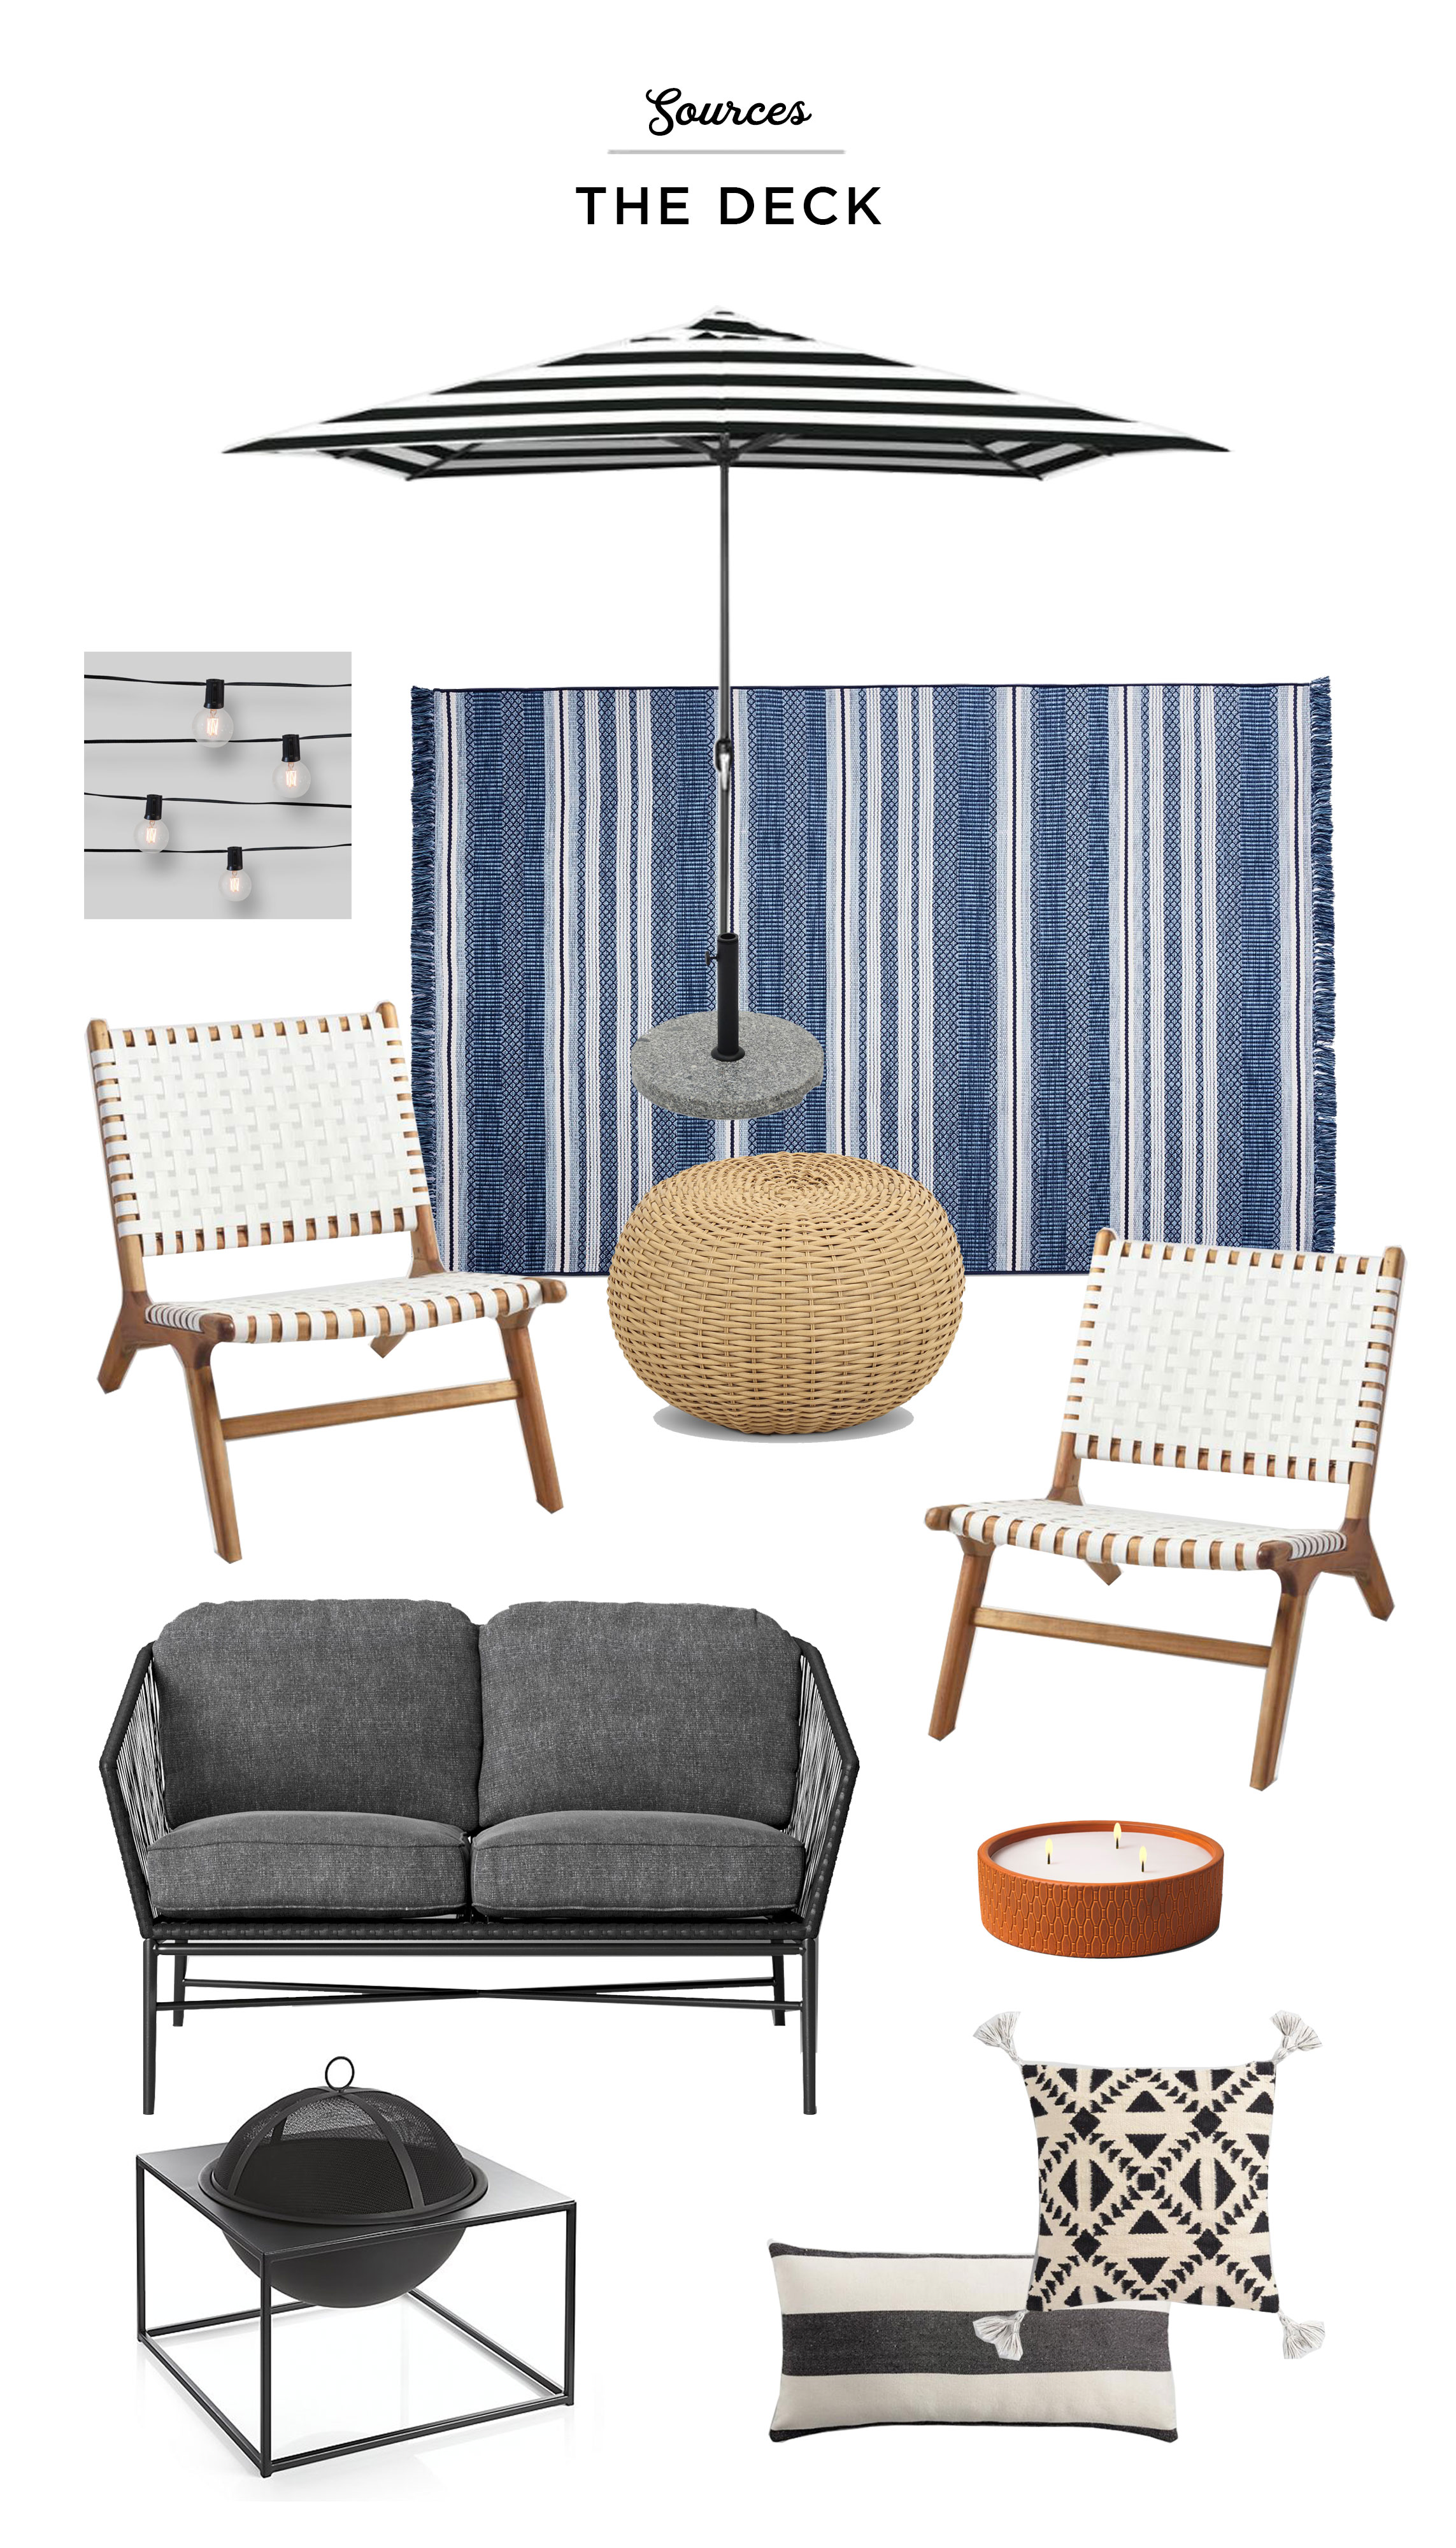 UMBRELLA  |  UMBRELLA BASE  |  CAFE LIGHTS  |  RUG  |  OTTOMAN  |  CHAIRS  |  LOVE SEAT  |  CANDLE  |  GEO PILLOW  |  BLACK AND WHITE STRIPED PILLOW  |  FIREPIT